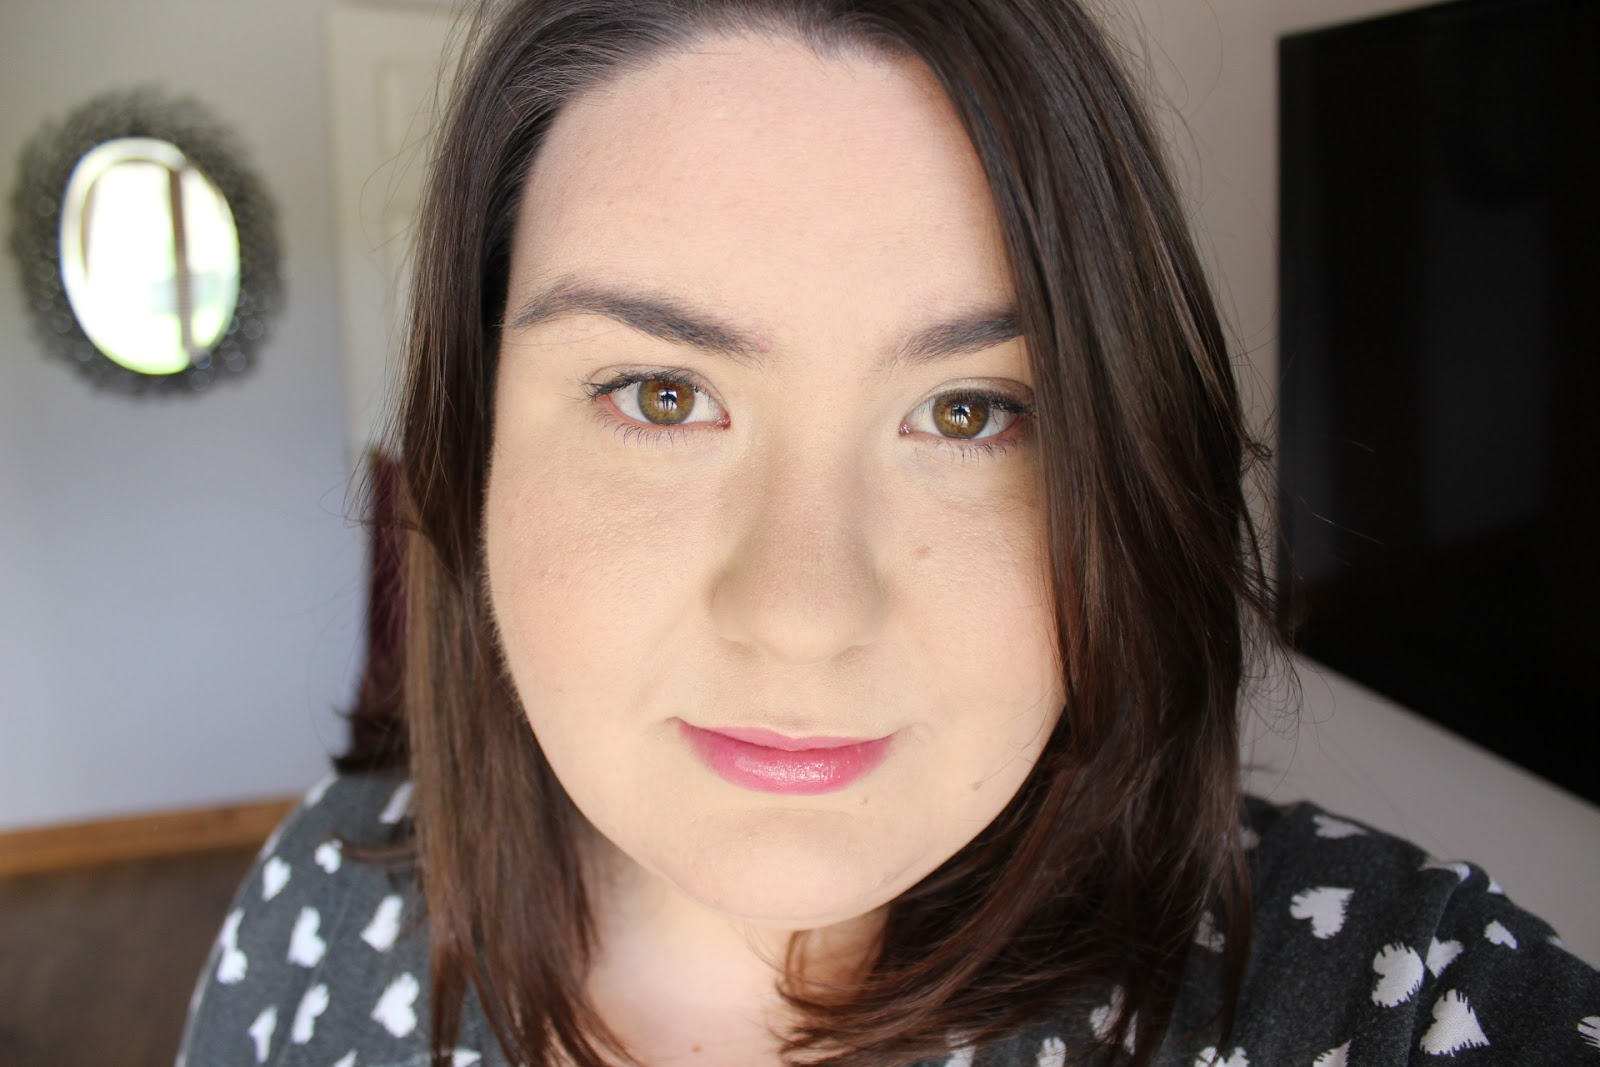 Urban Decay Beached Bronzer in Sunkissed  On The Face